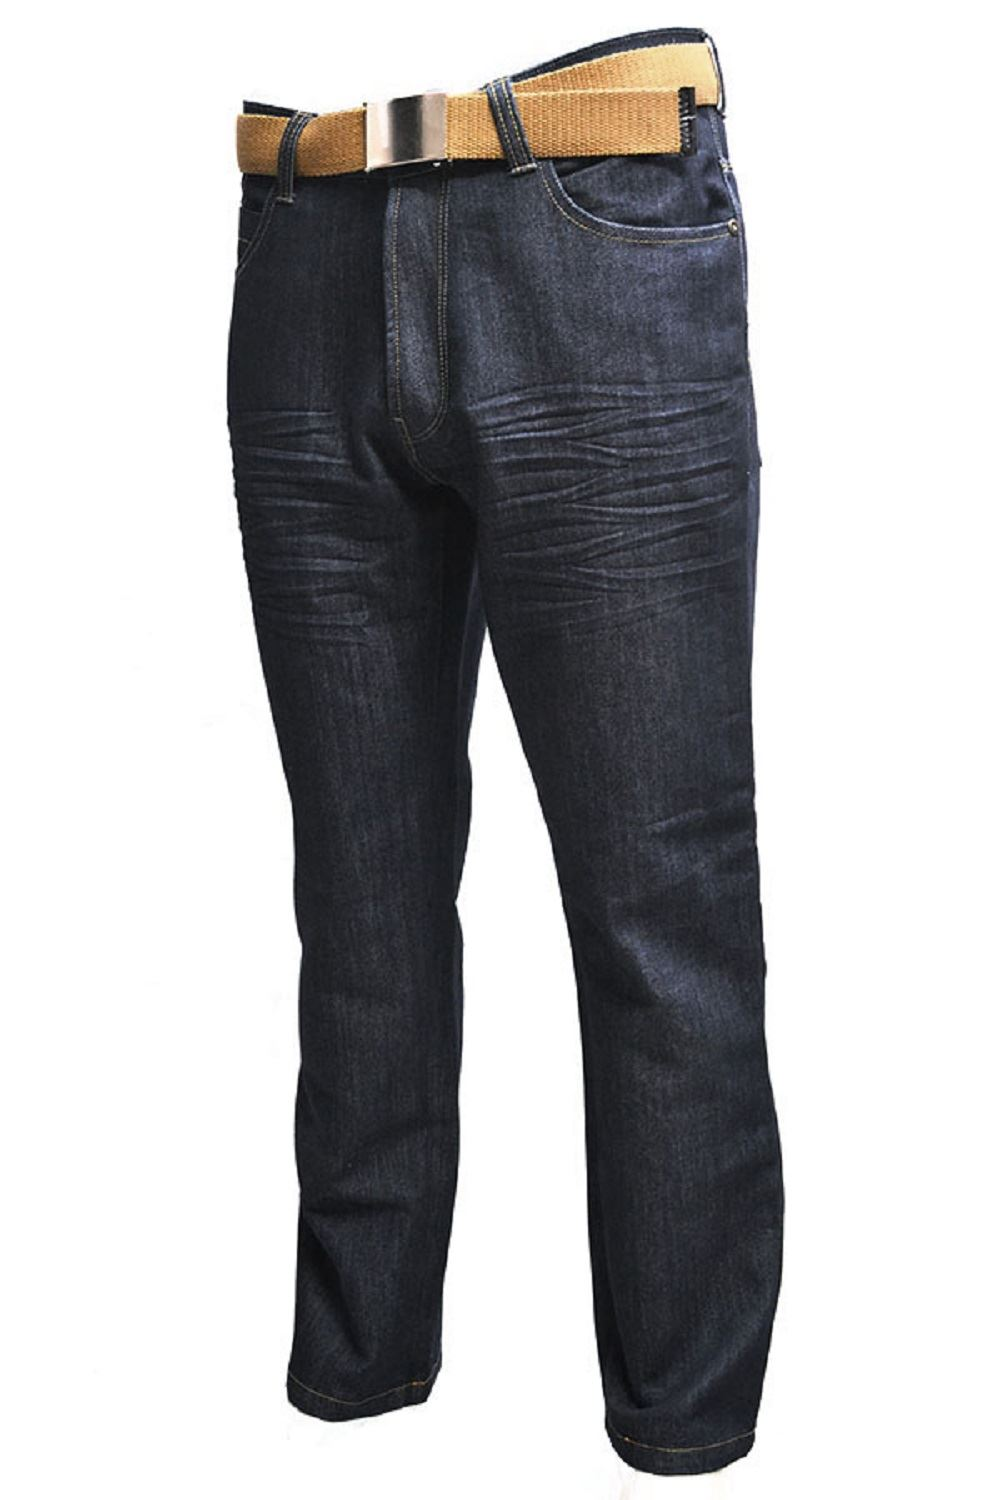 Mens-Classic-Fit-Black-Indigo-Jeans-Kori-By-Creon-Previs thumbnail 9